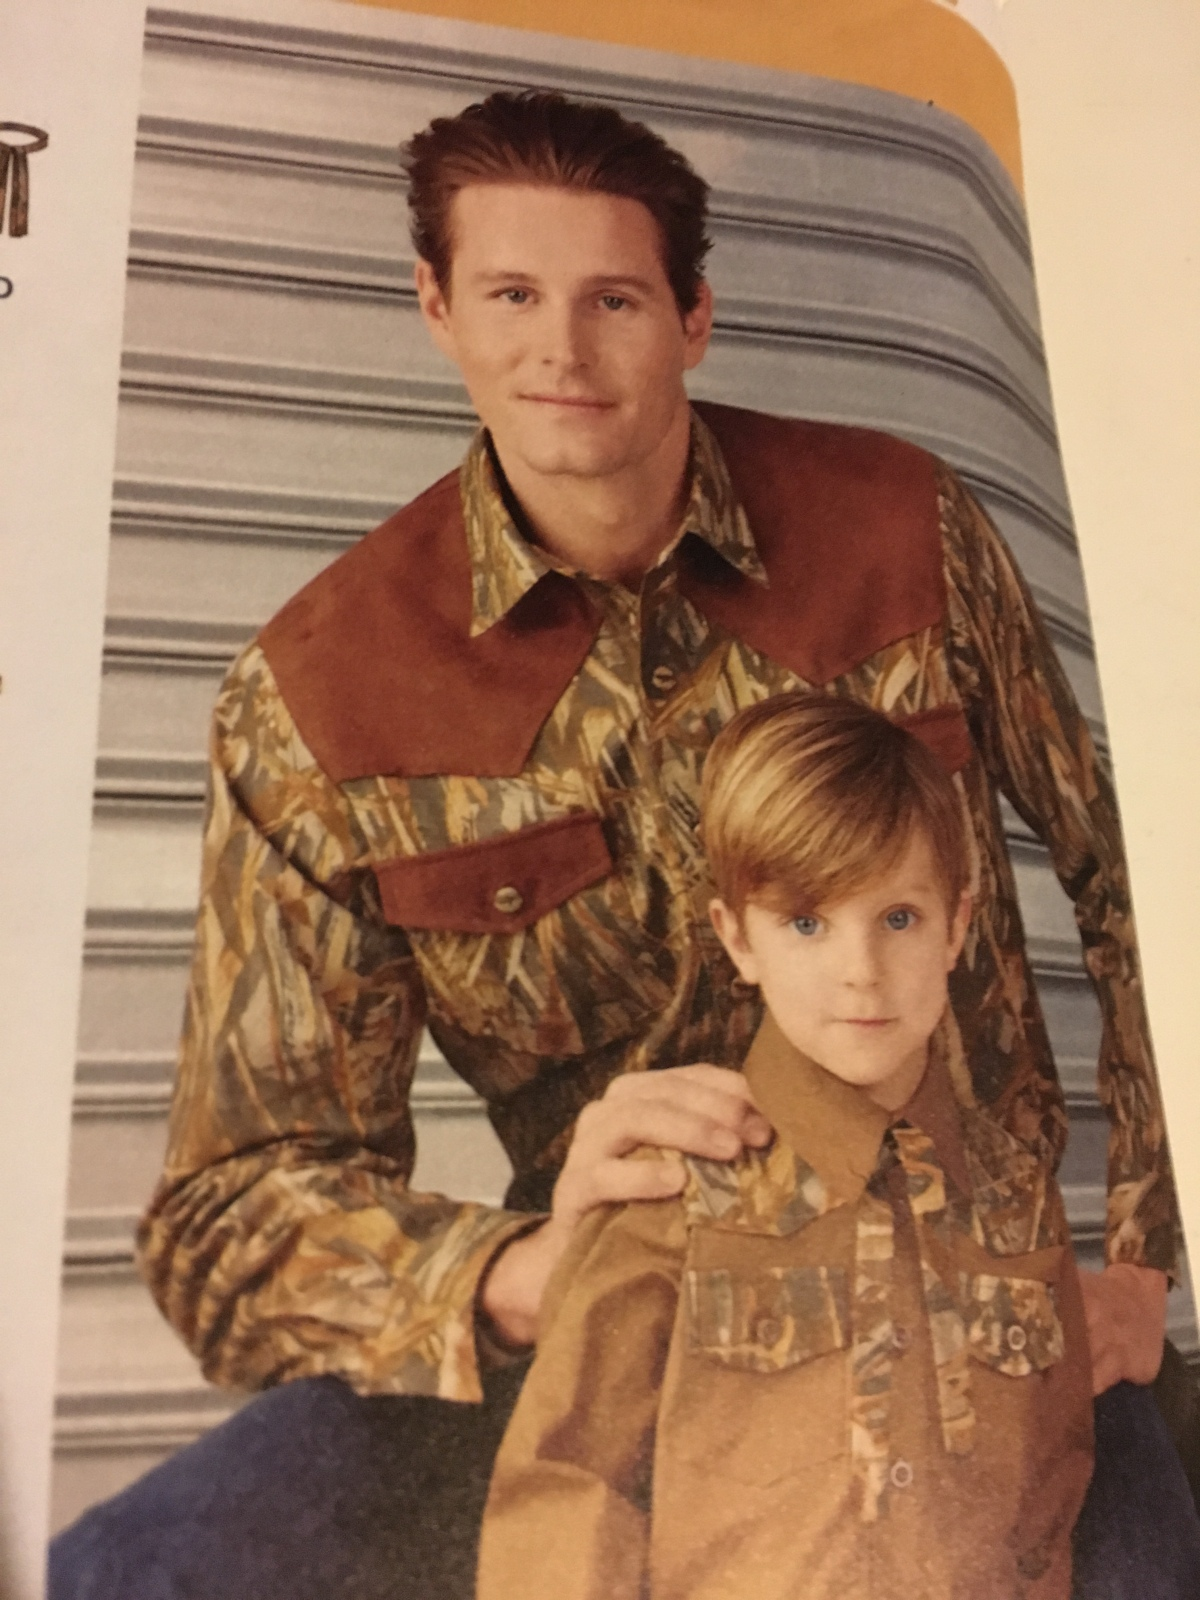 Picture of a pattern image with a man and boy wearing camouflage and brown shirts.